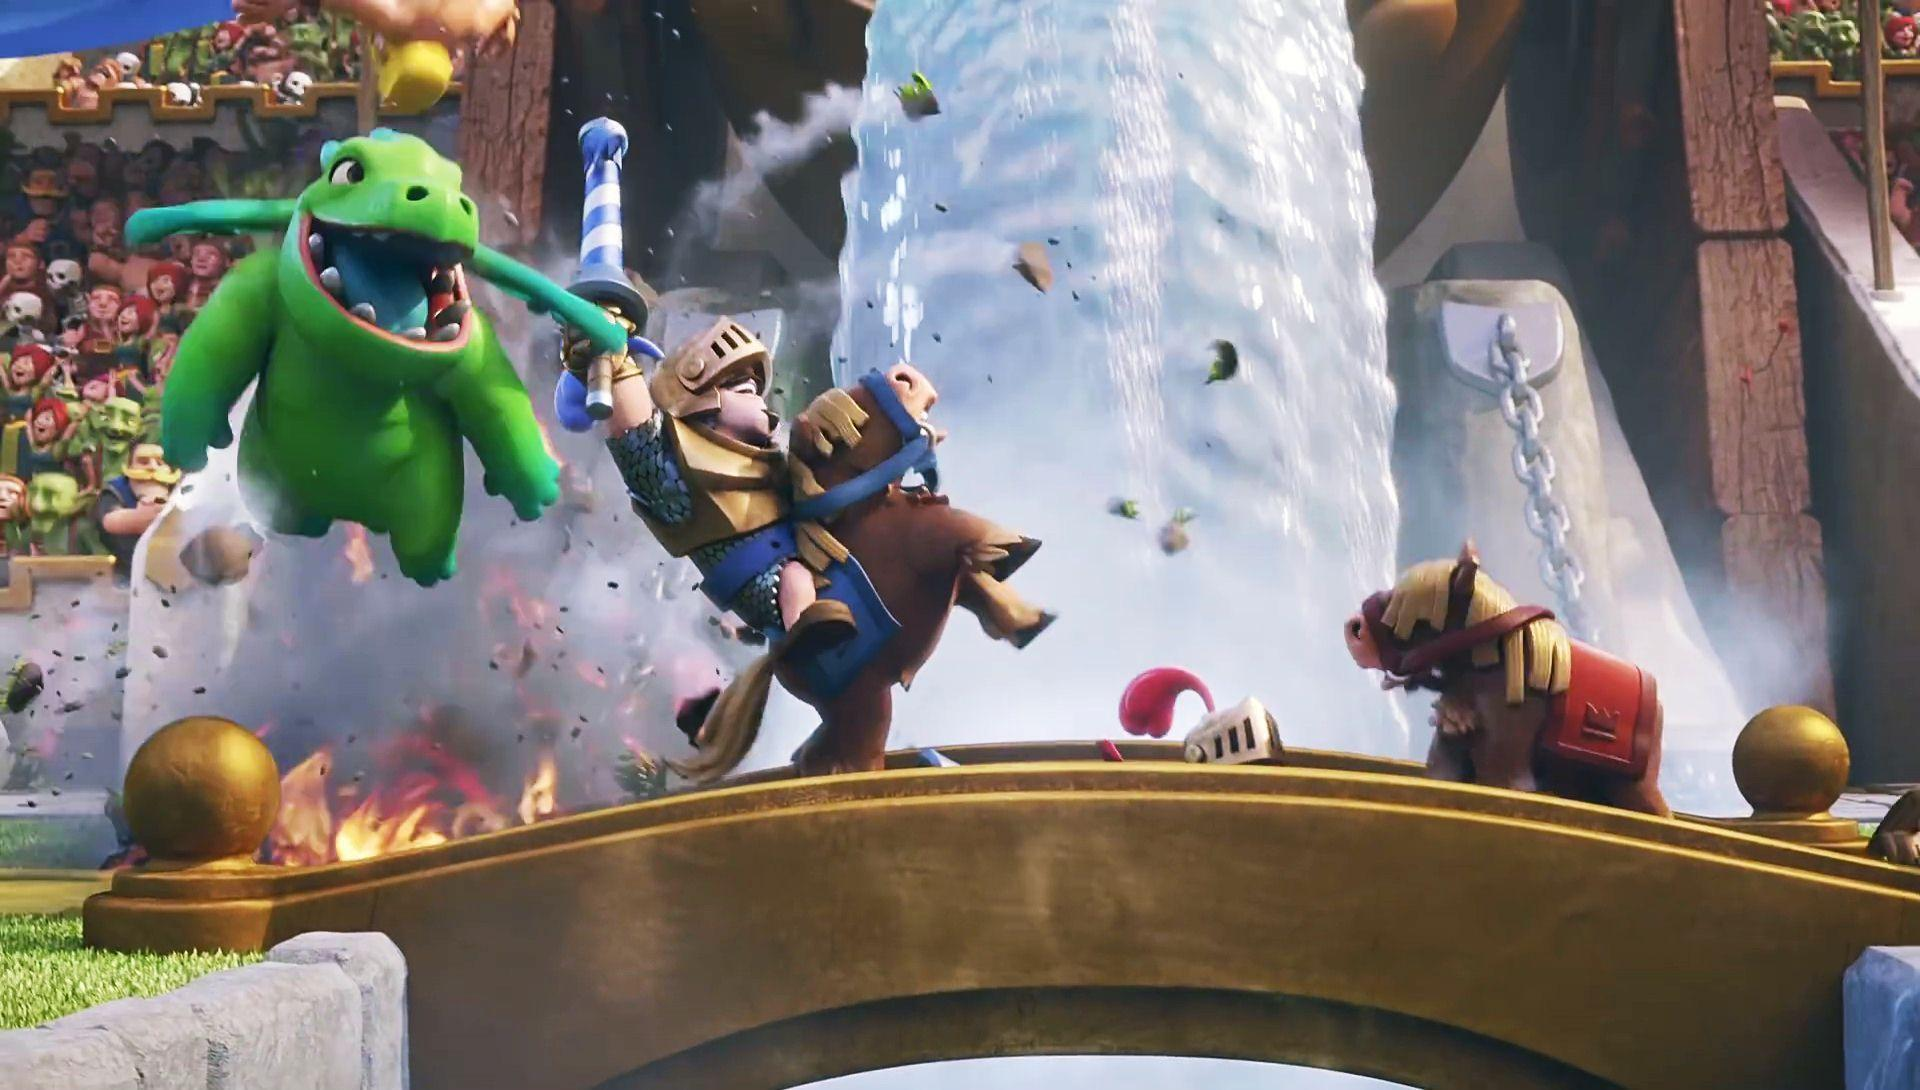 Clash Royale Wallpapers HD Backgrounds, Images, Pics, Photos Free ...